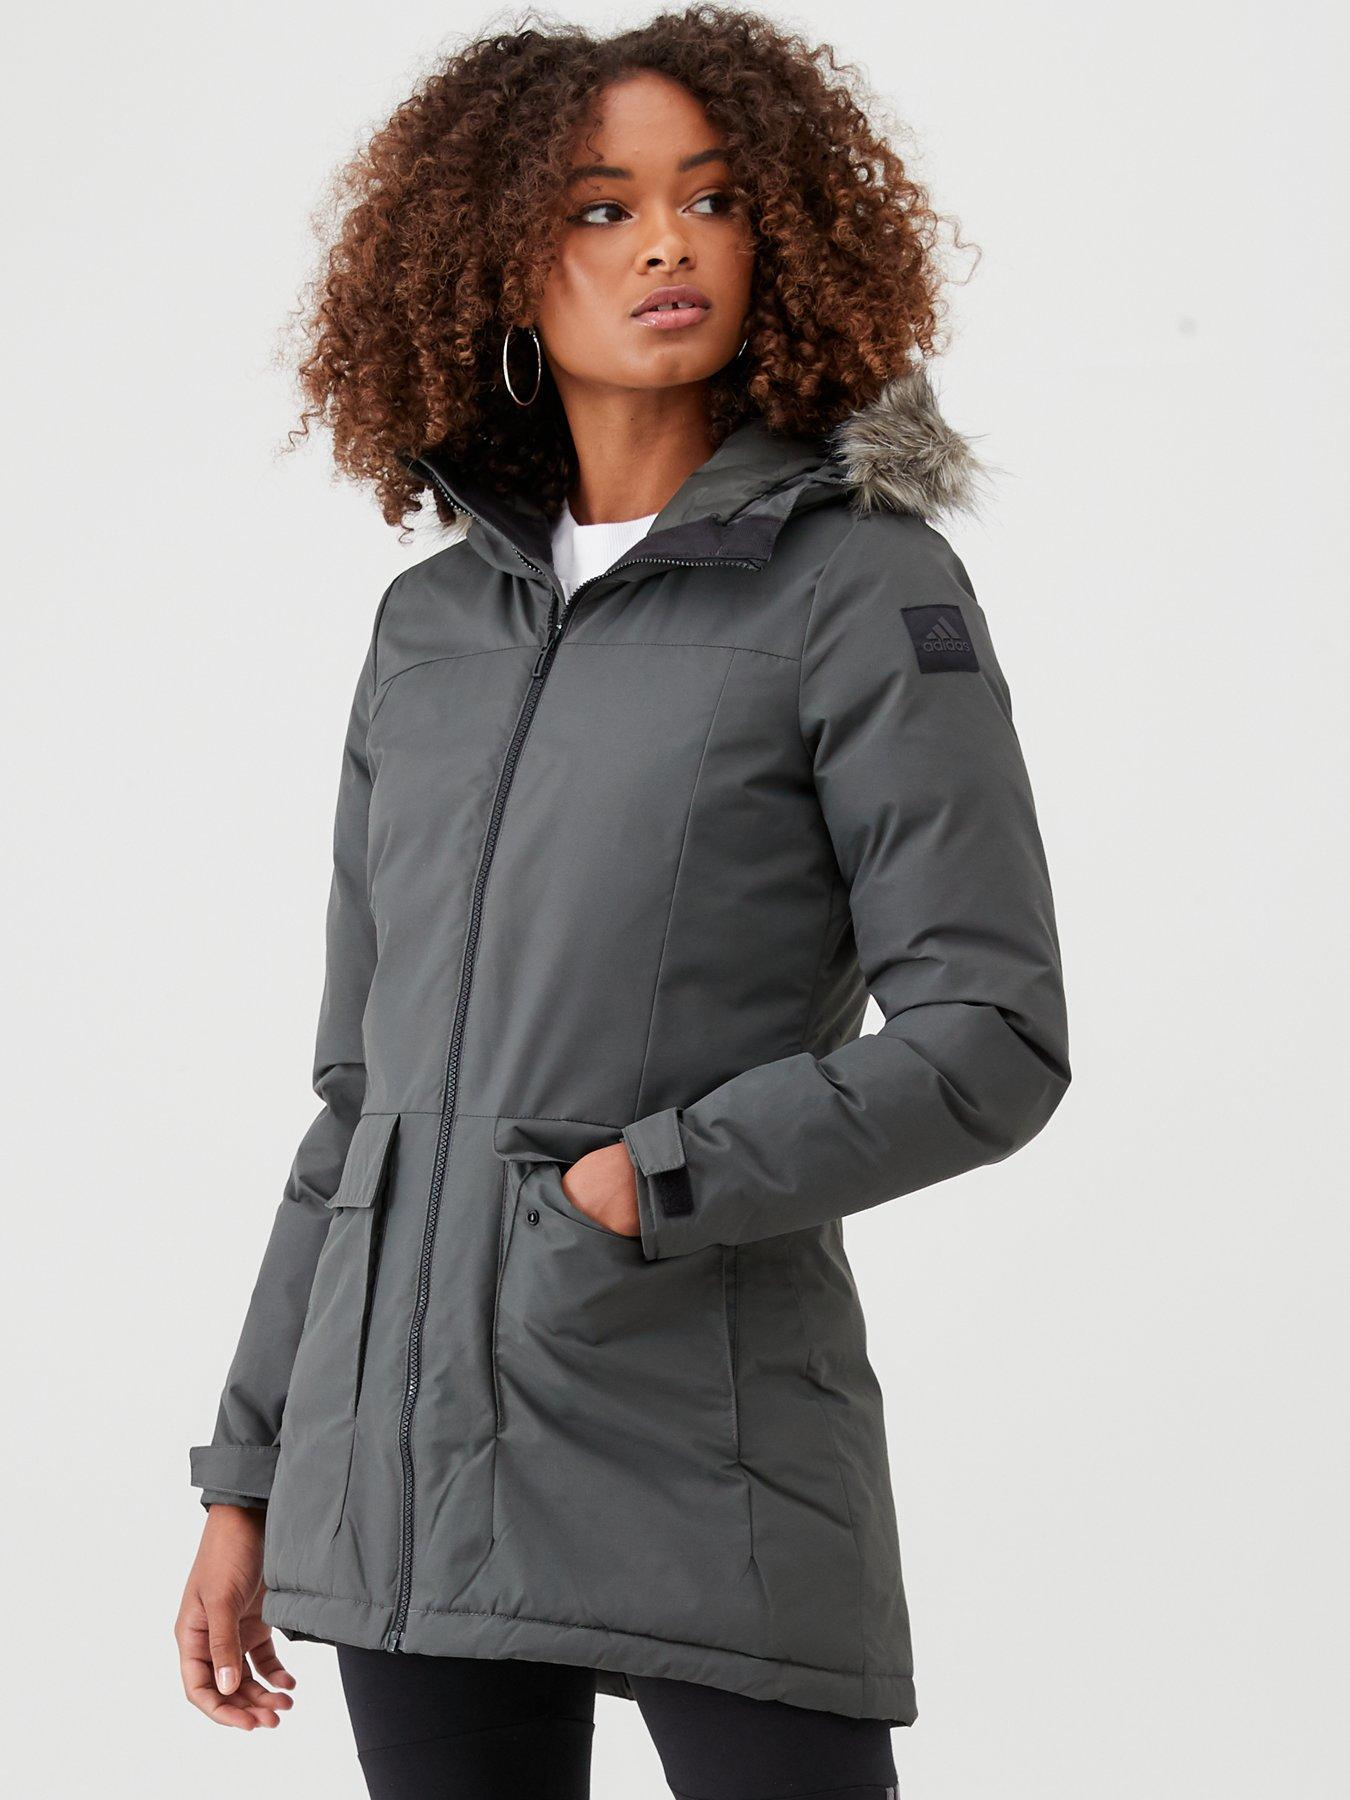 Adidas | Coats & jackets | Women | very.co.uk